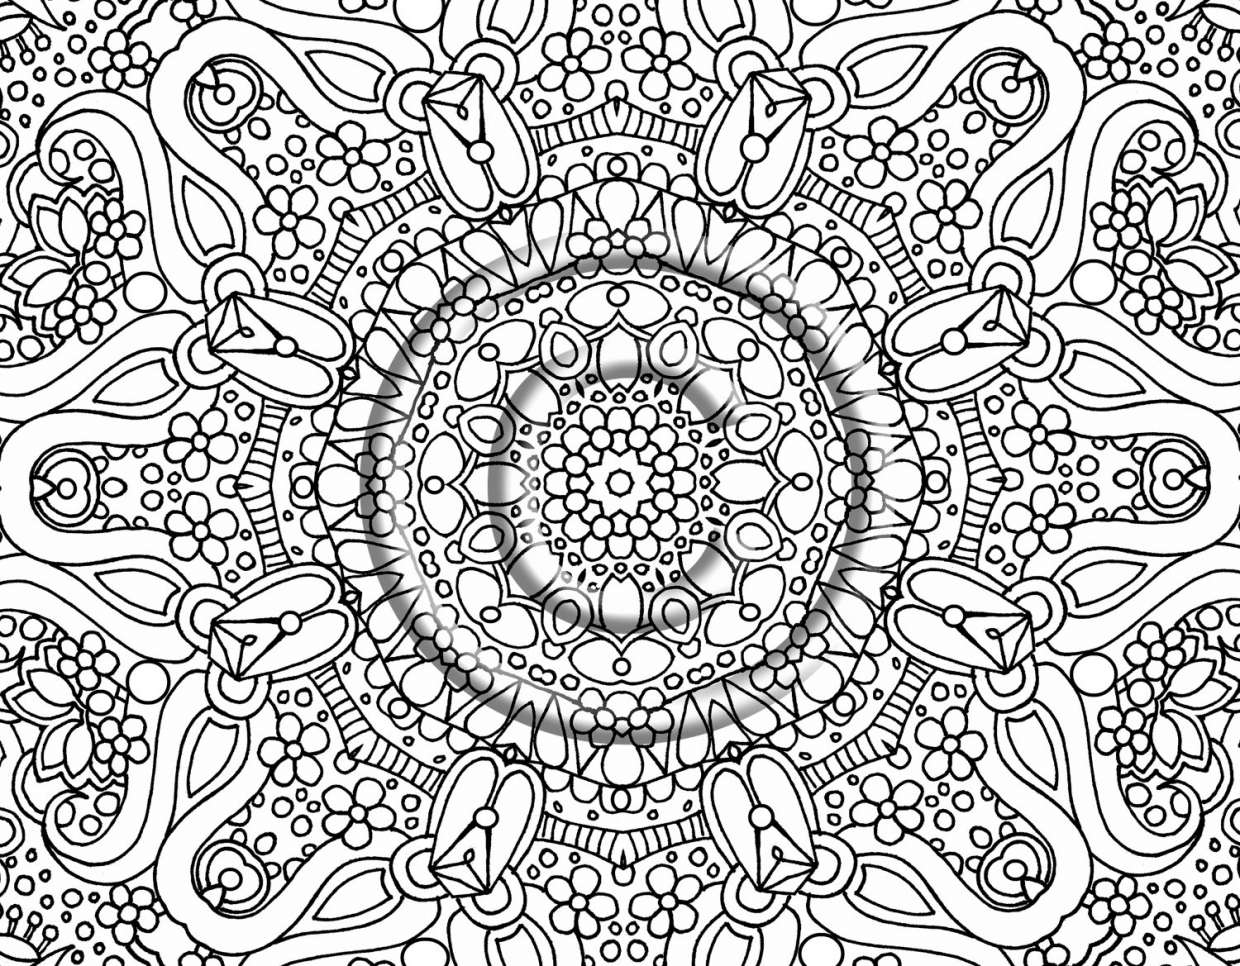 Get This Free Complex Coloring Pages to Print for Adults